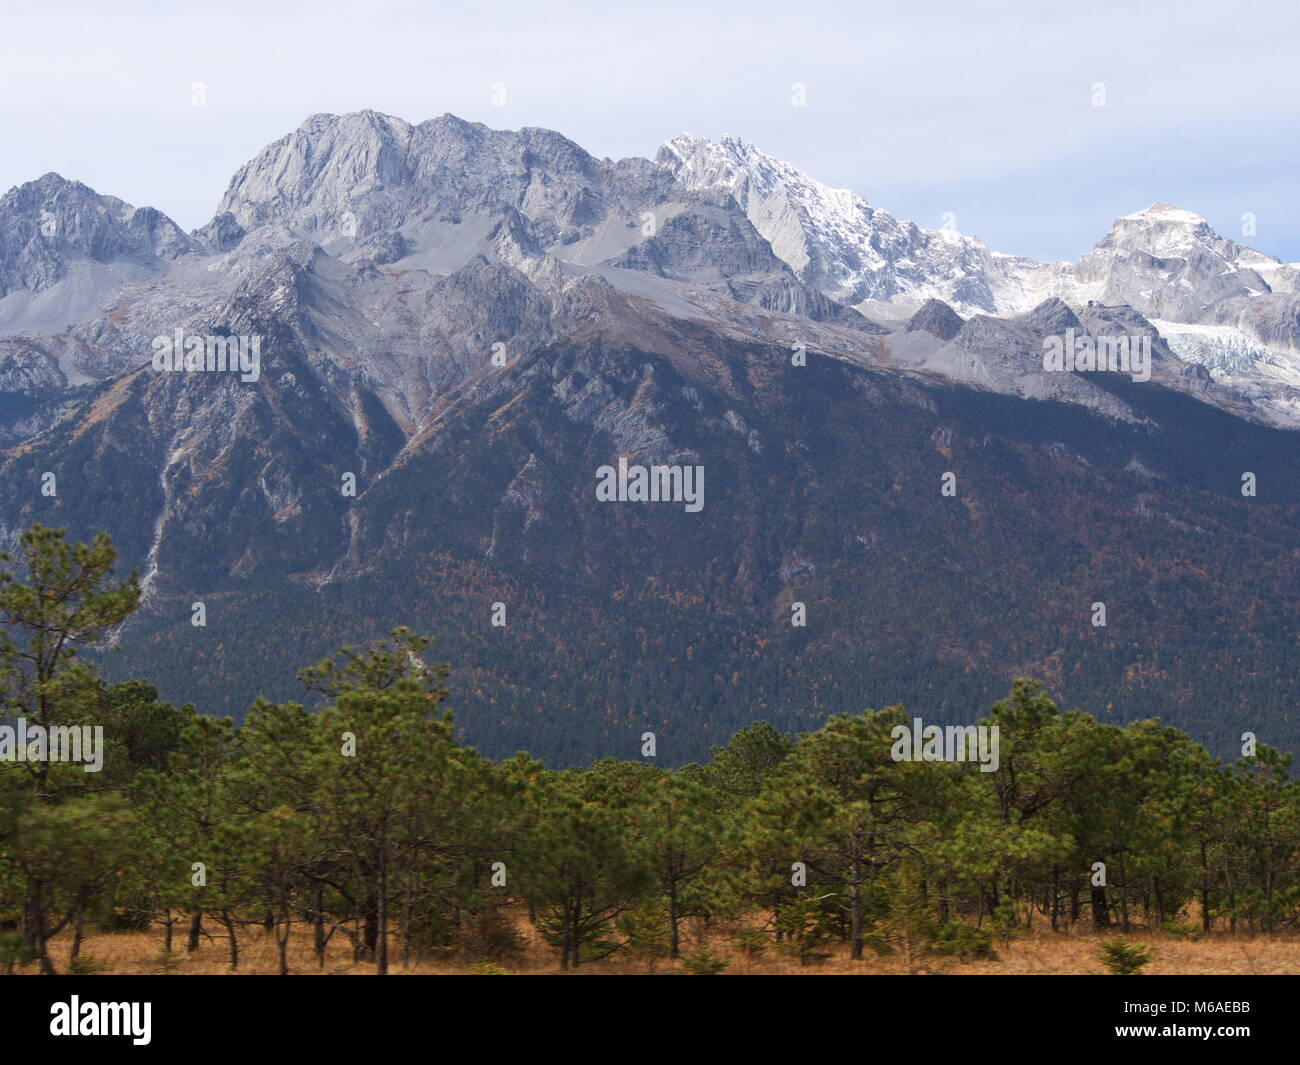 A Stunning view of Jade Dragon Snow Mountain in Lijiang Yunnan Province. Travel in China in 2012, November 18th. - Stock Image